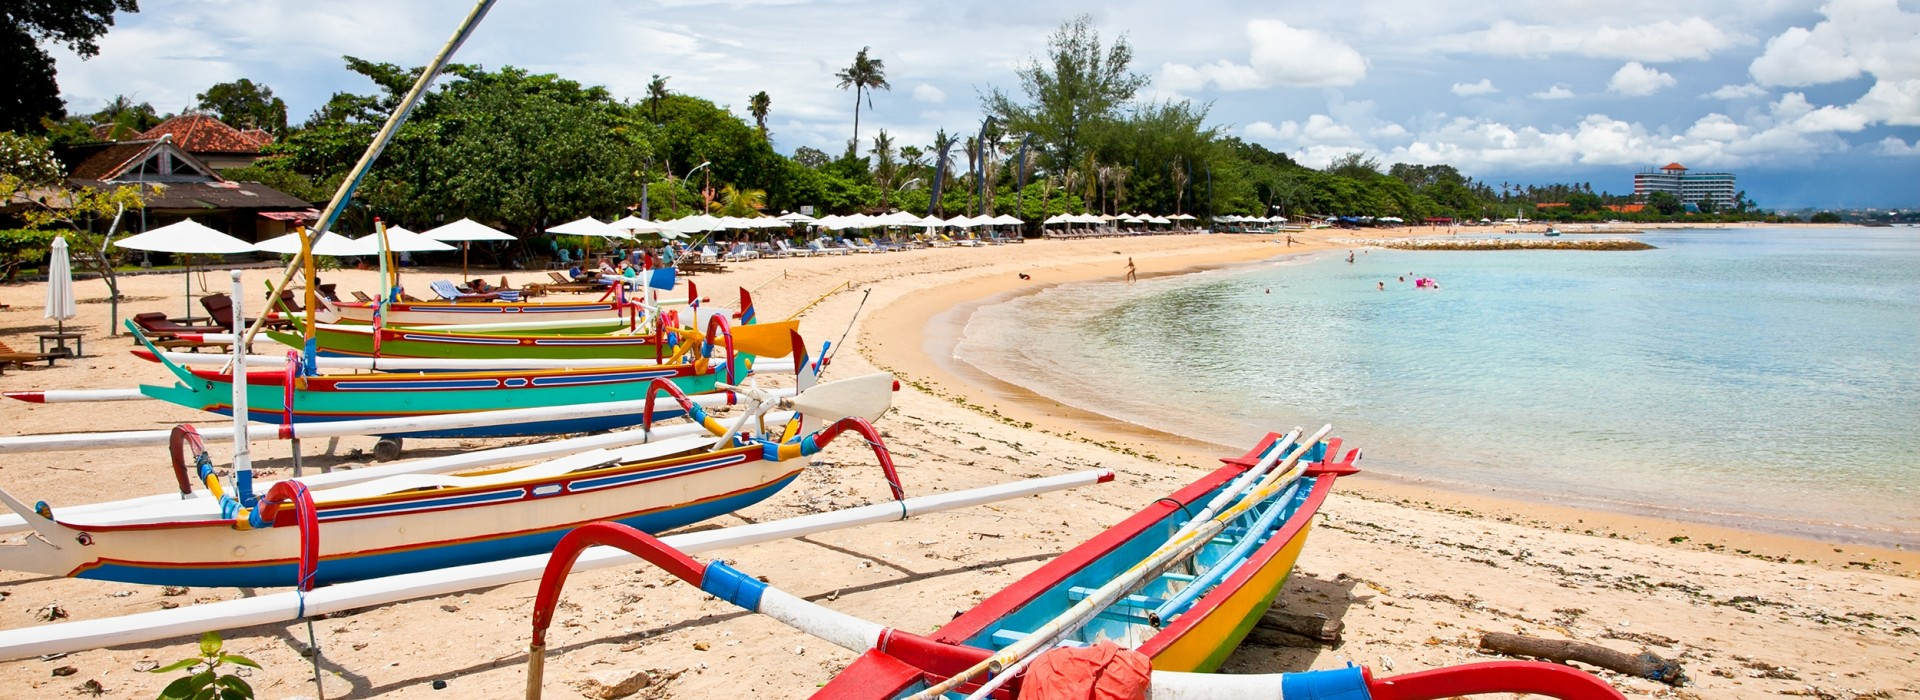 Traditional fishing boats lined up in Sanur's beach